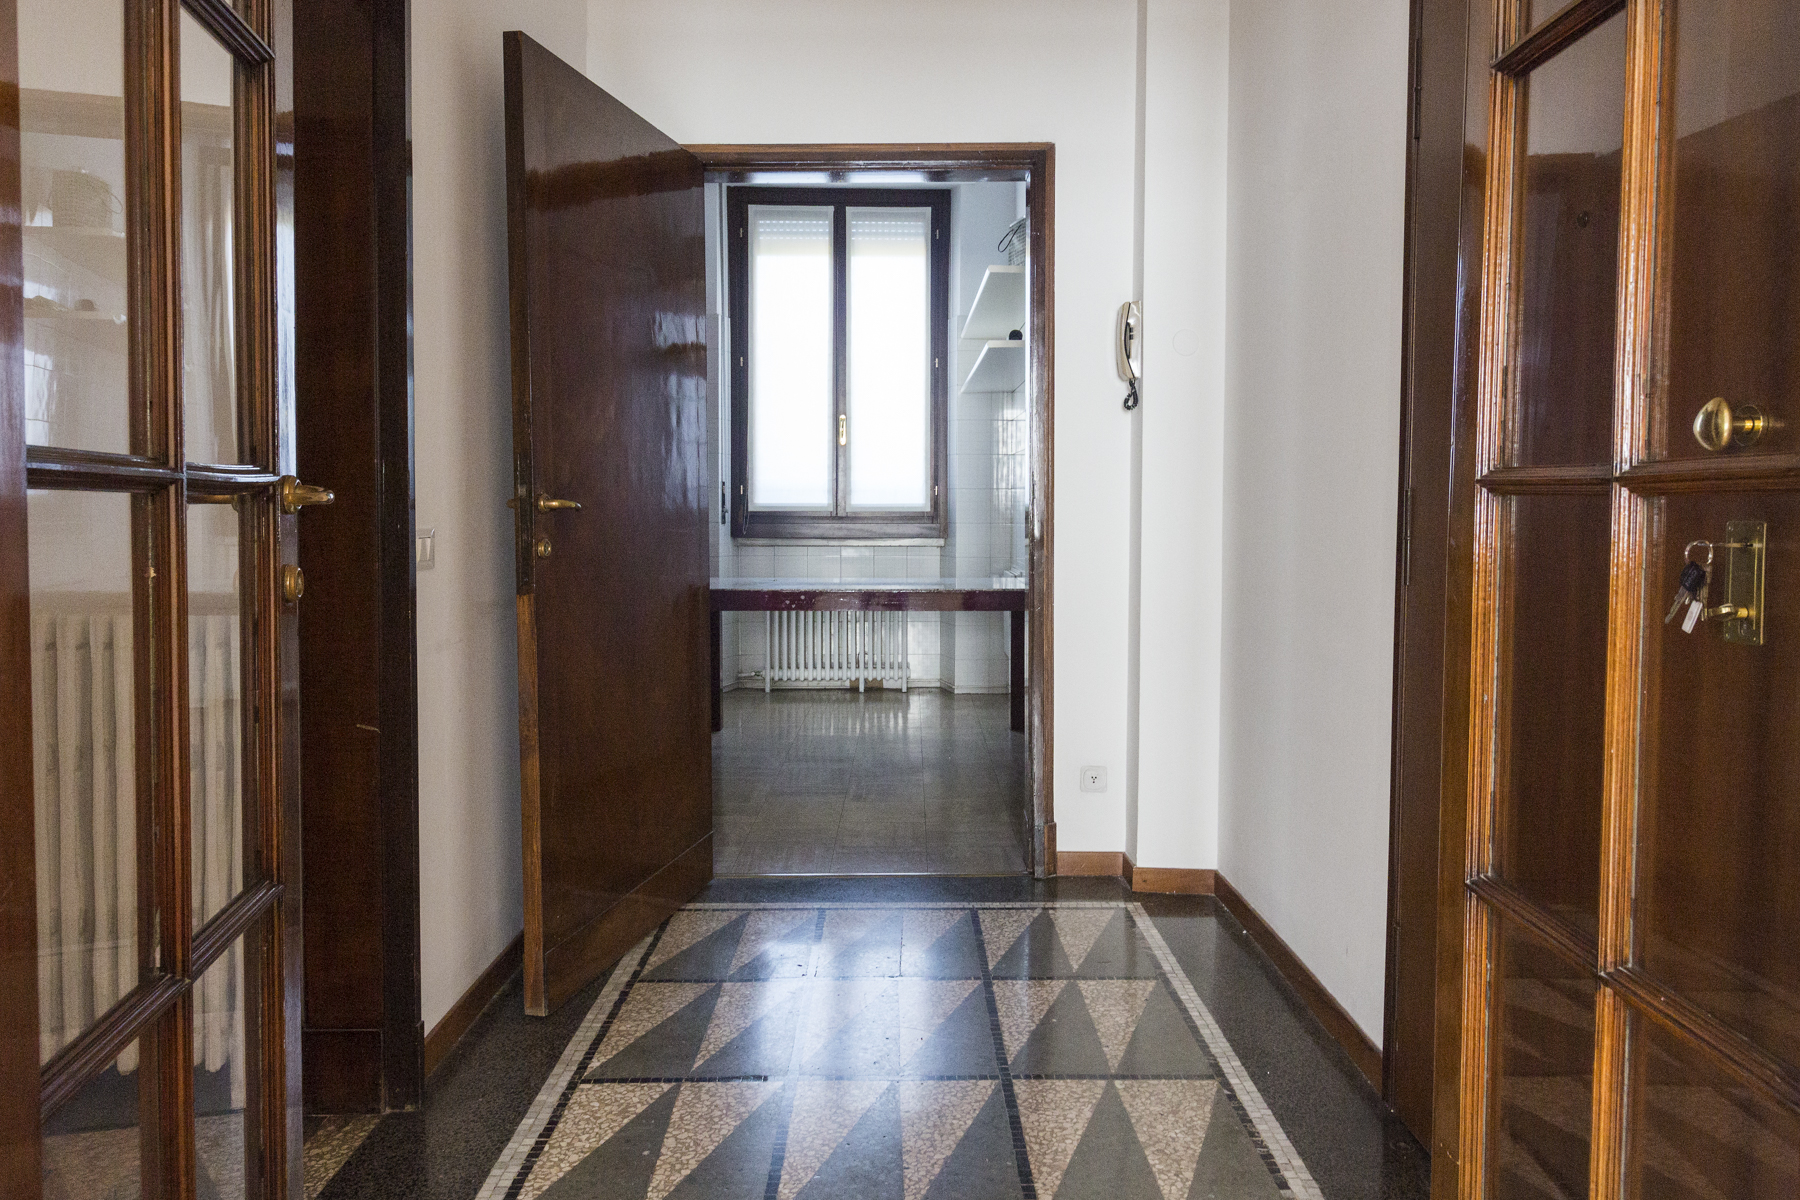 Additional photo for property listing at Appartamento esclusivo in contesto signorile via Pietro Cossa Milano, Milano 20122 Italia